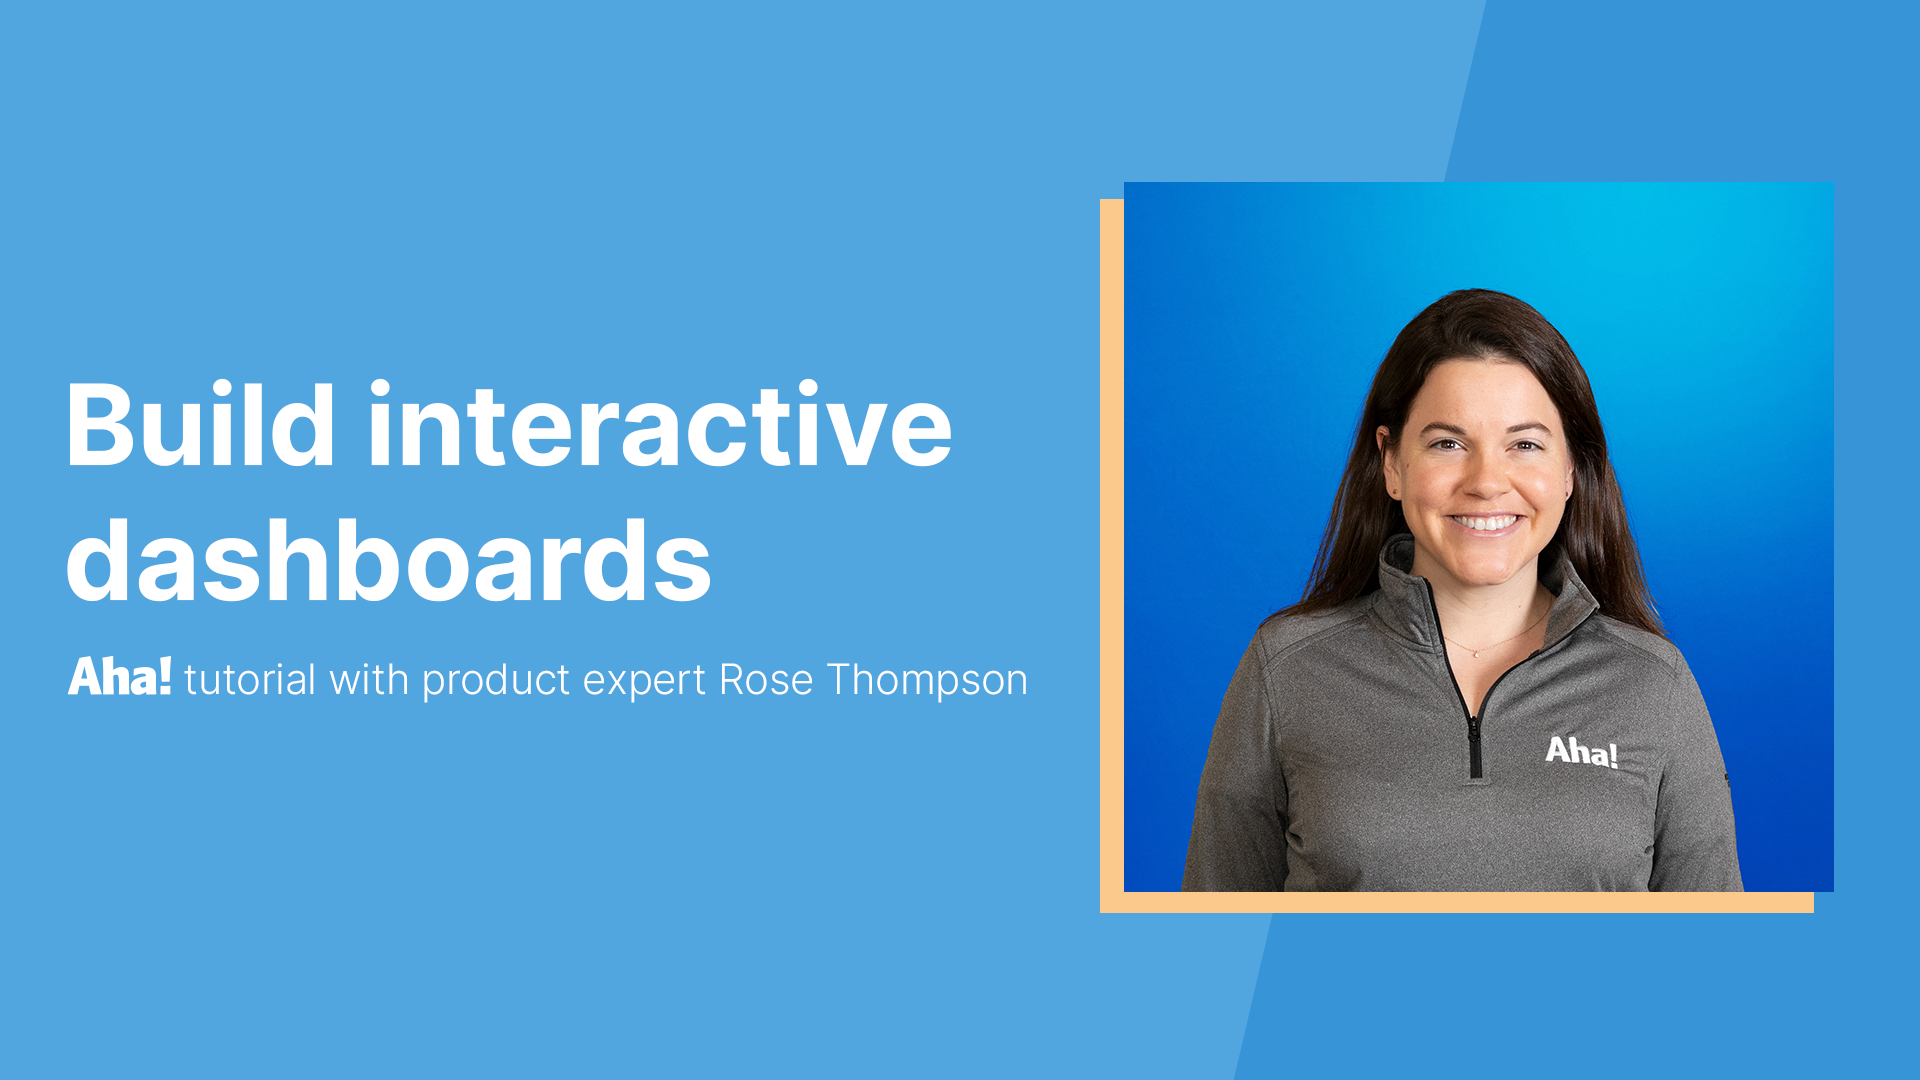 Build interactive dashboards